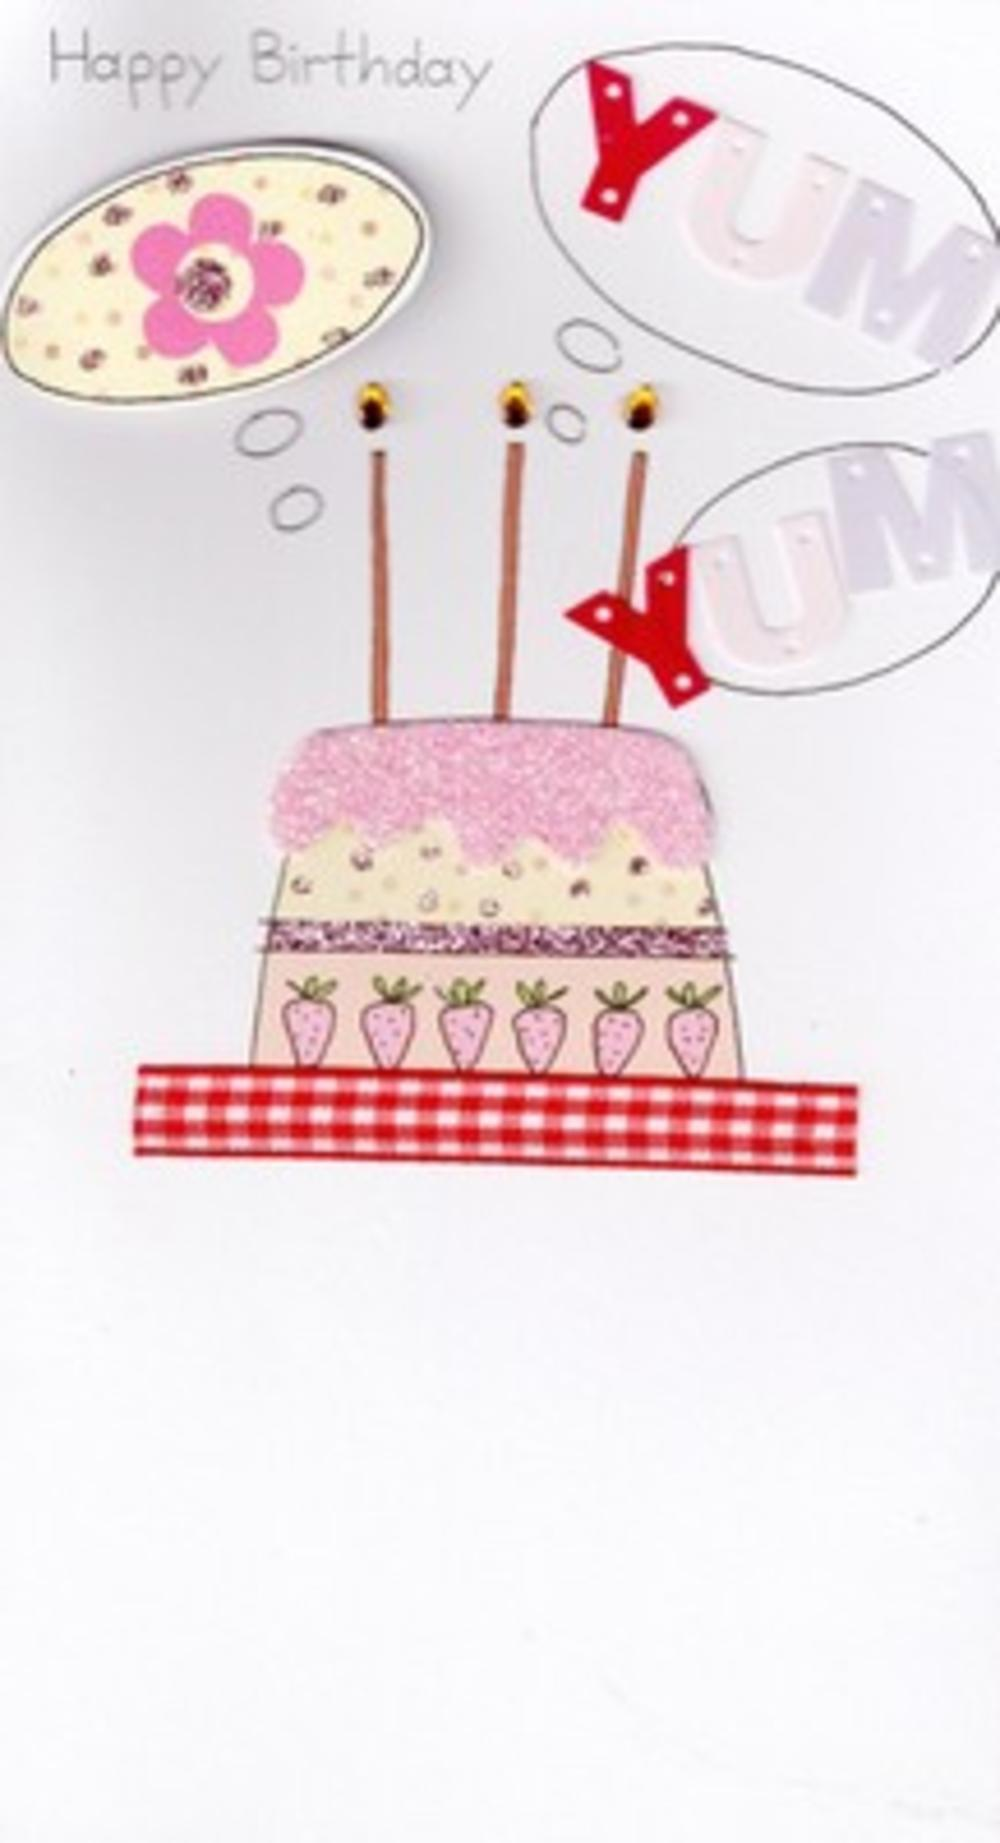 Handcrafted Greeting Cards Female Girl Birthday Card Pink Cake Blank Inside